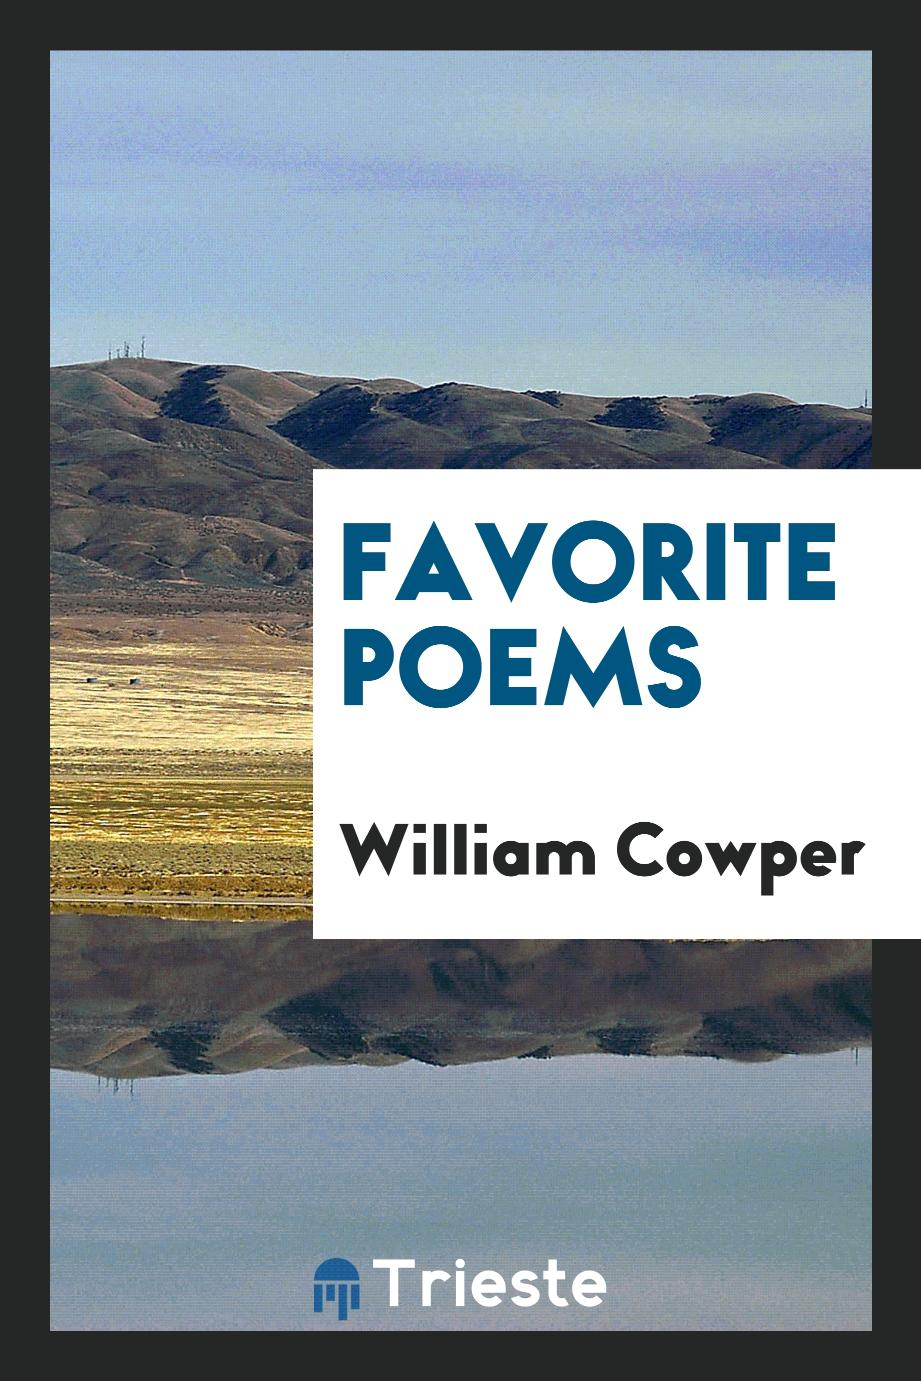 Favorite Poems